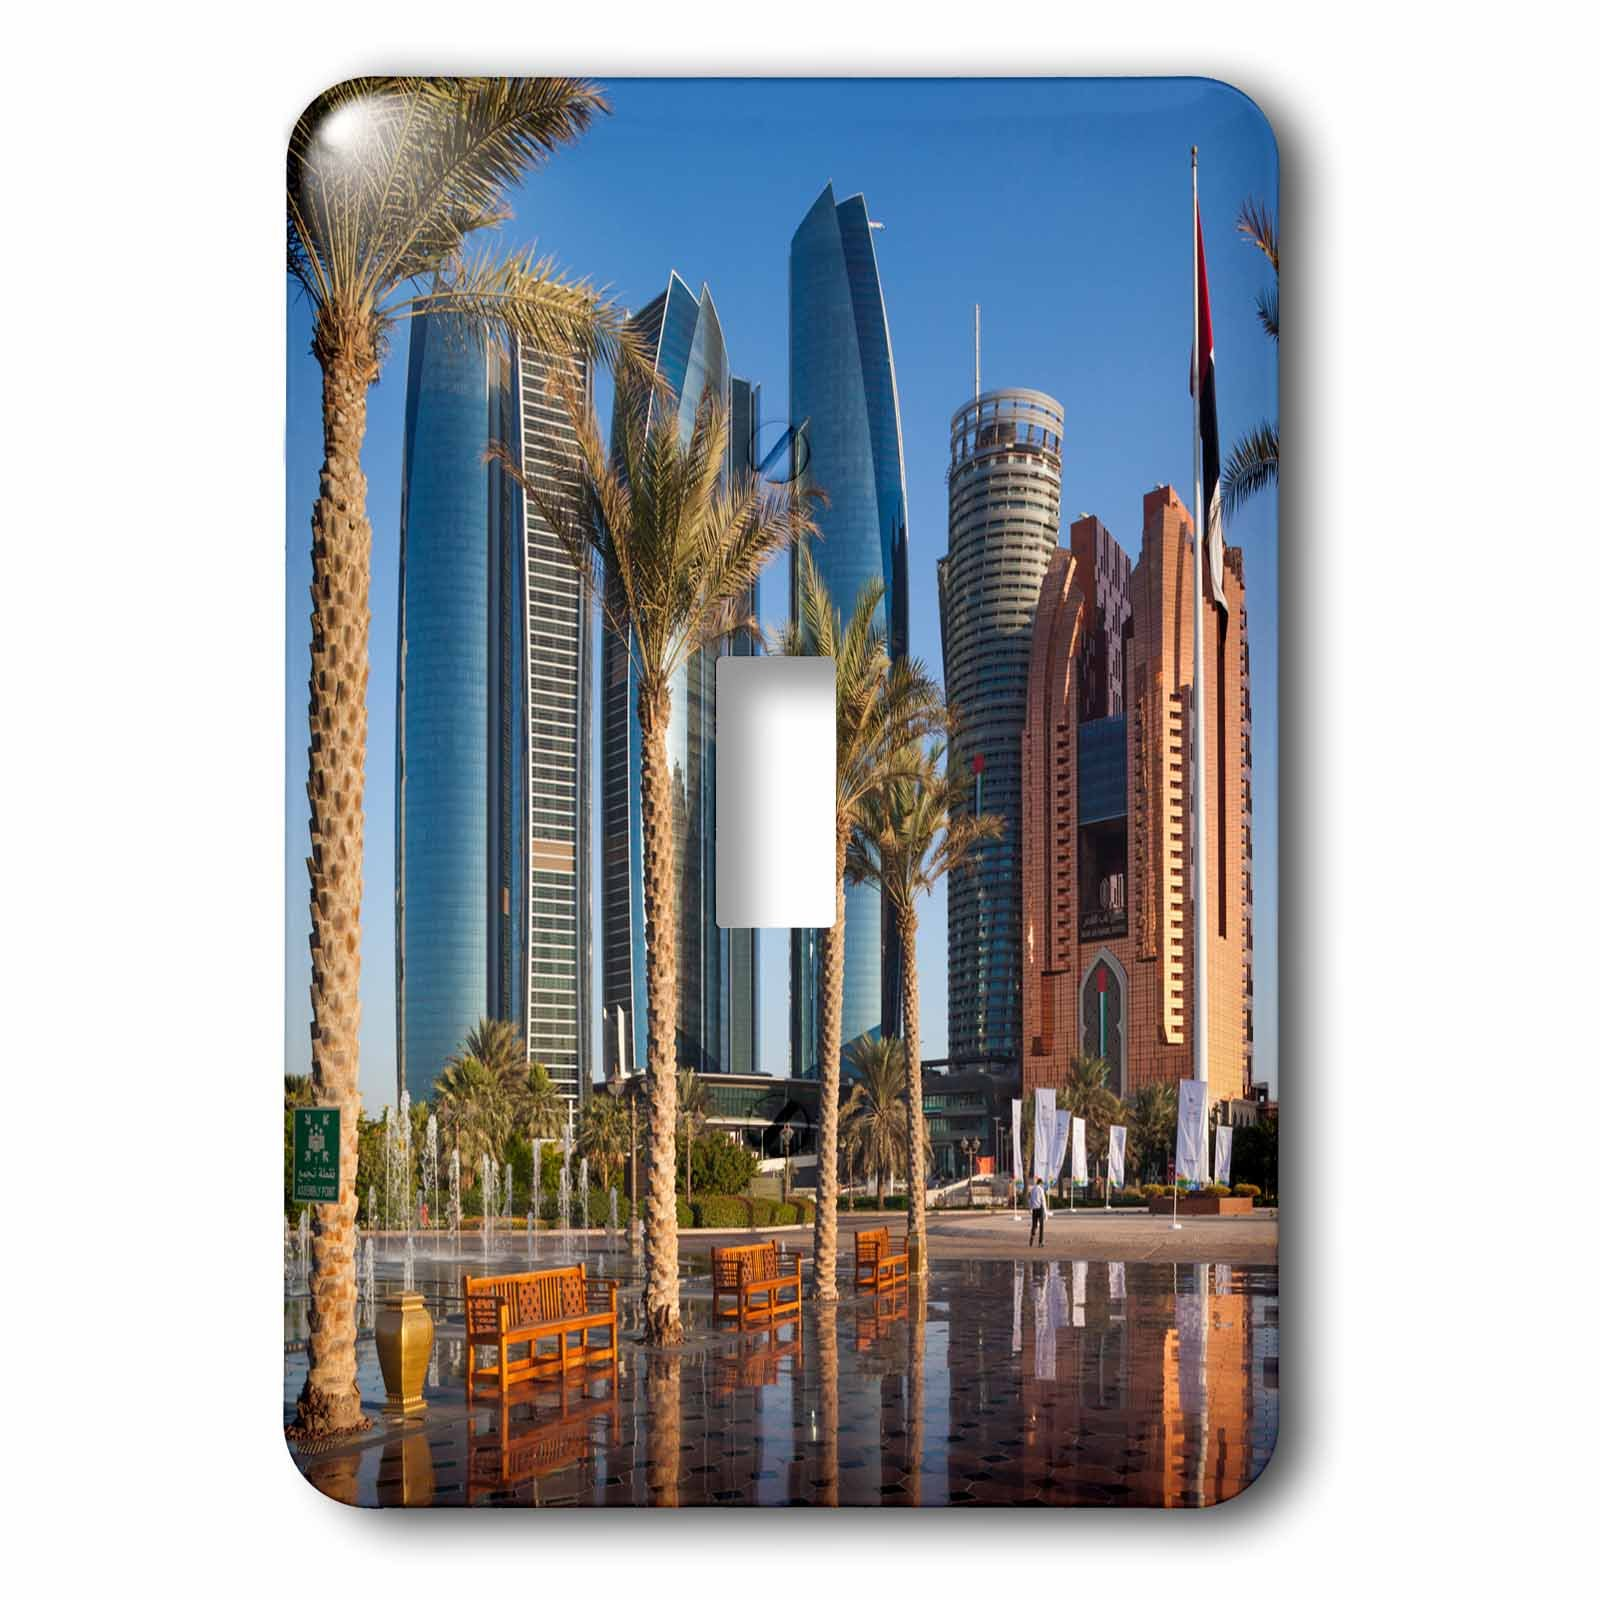 3dRose Danita Delimont - Cities - UAE, Abu Dhabi. Etihad Towers and Emirates Palace Hotel fountains - Light Switch Covers - single toggle switch (lsp_277135_1)